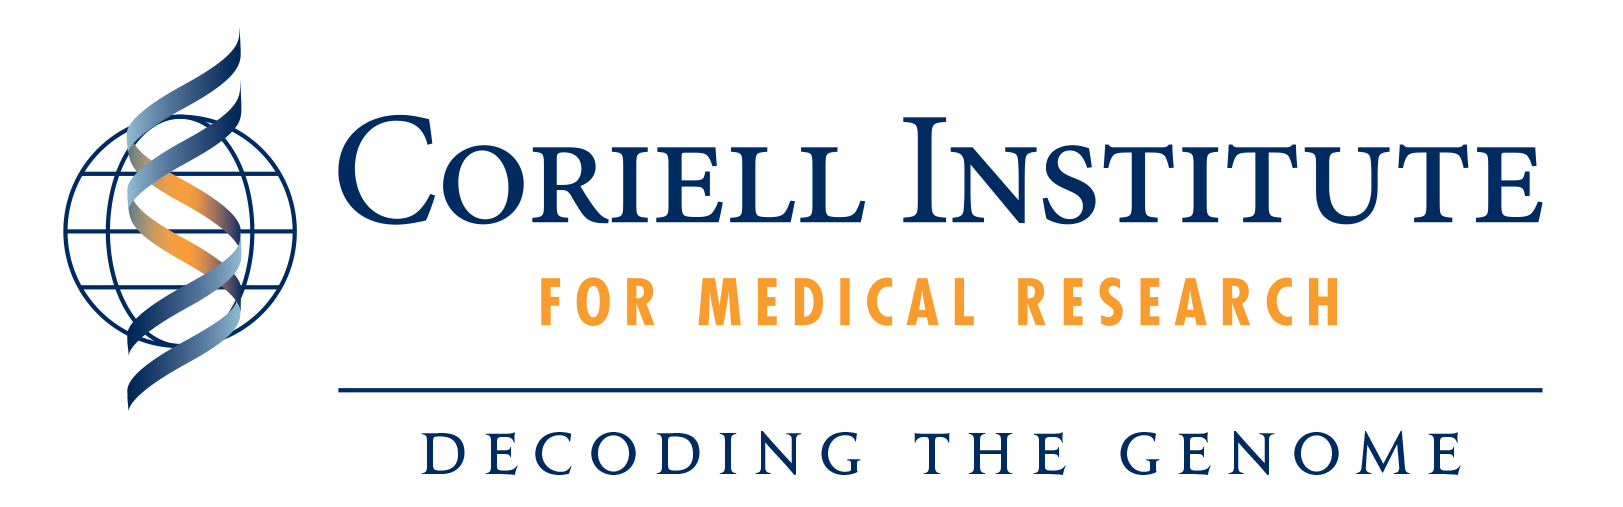 Coriell Institute of Medical Research